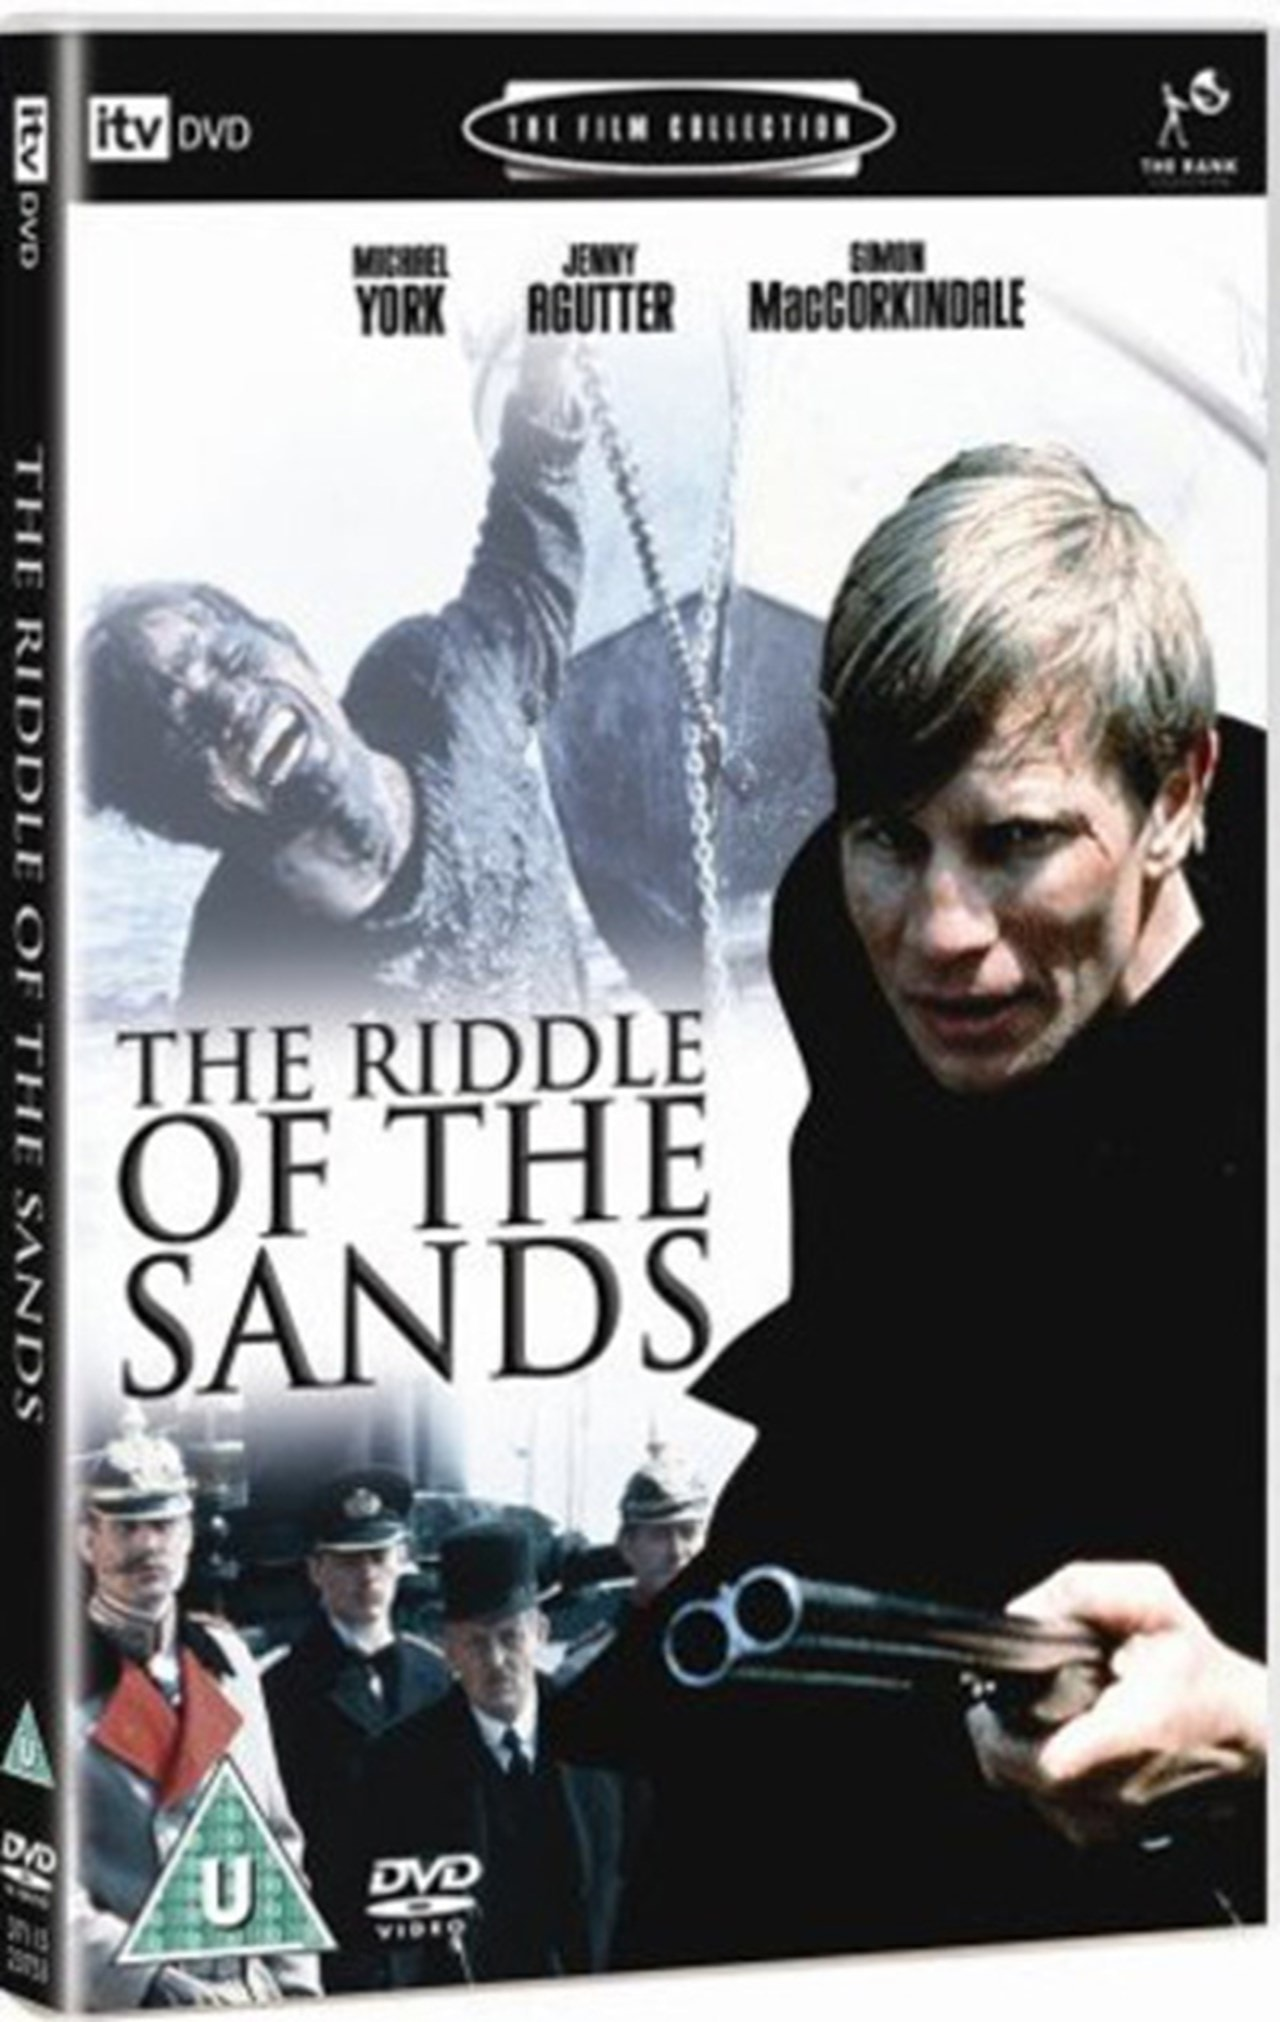 The Riddle of the Sands - 1